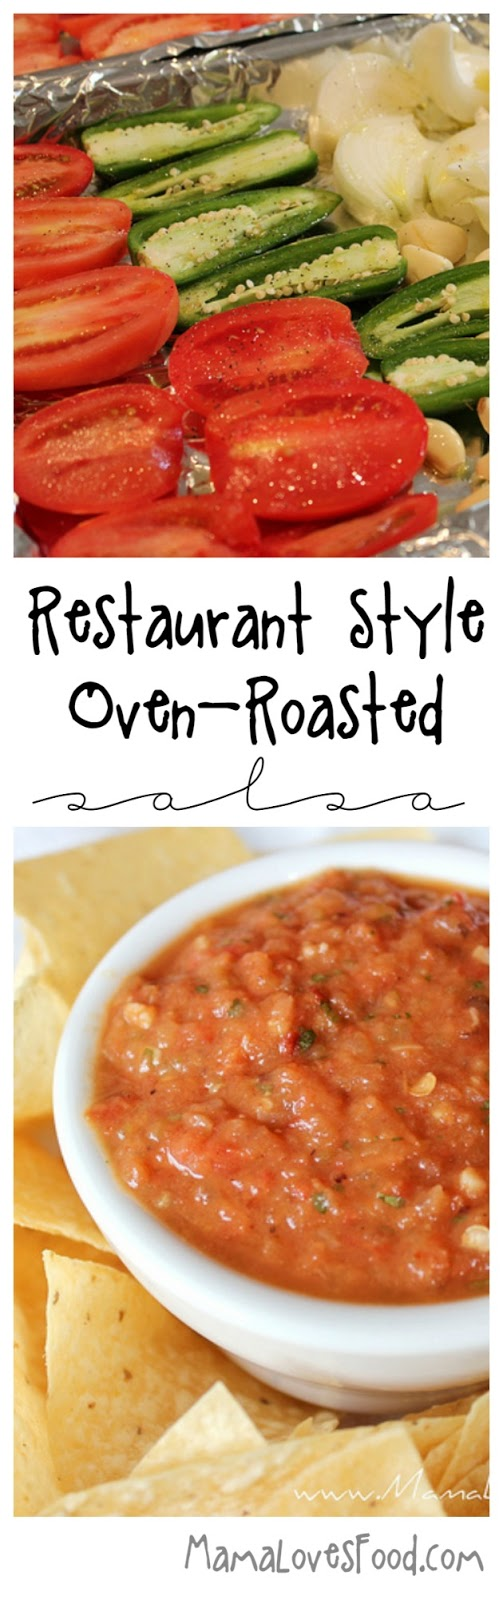 Restaurant Style Roasted Tomato and Garlic Salsa Recipe